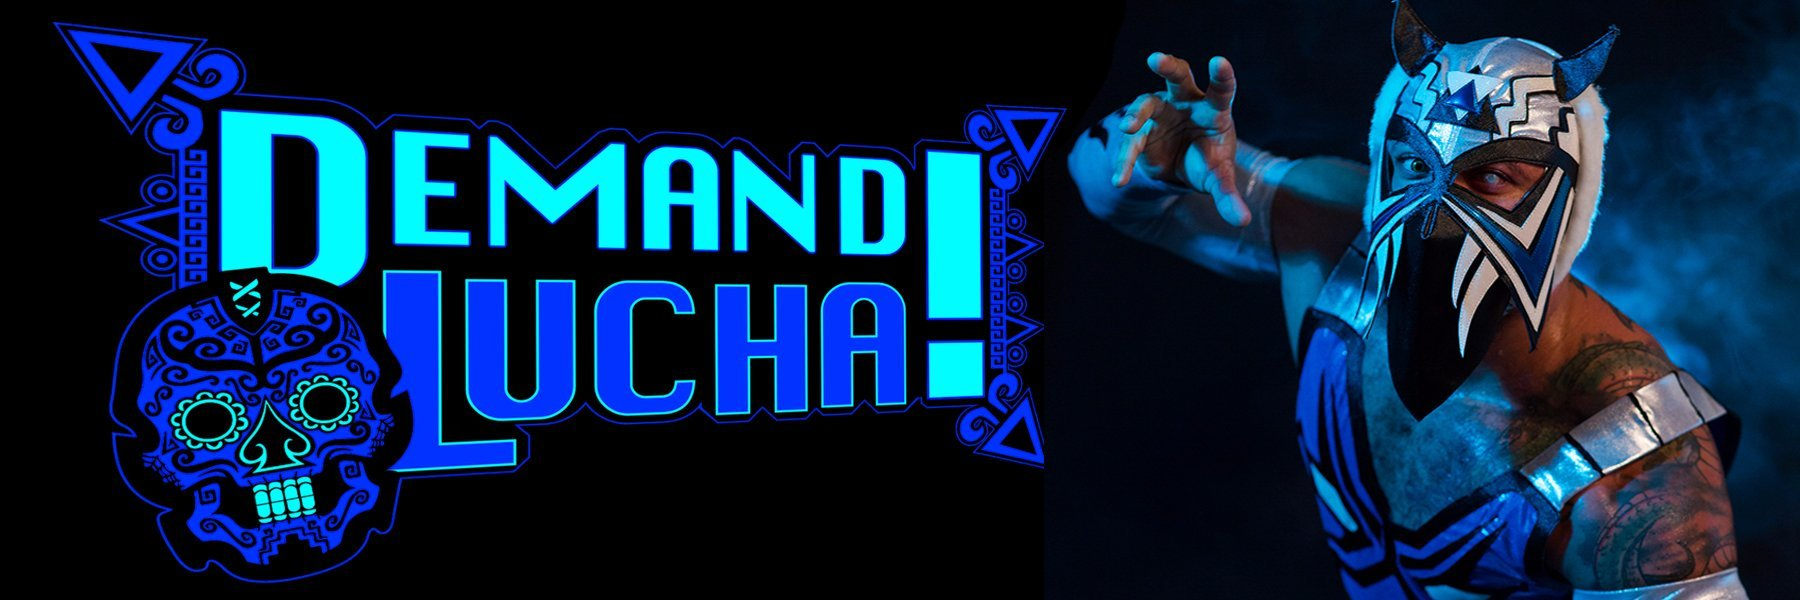 Check out a TON of awesome show from DEMAND LUCHA!